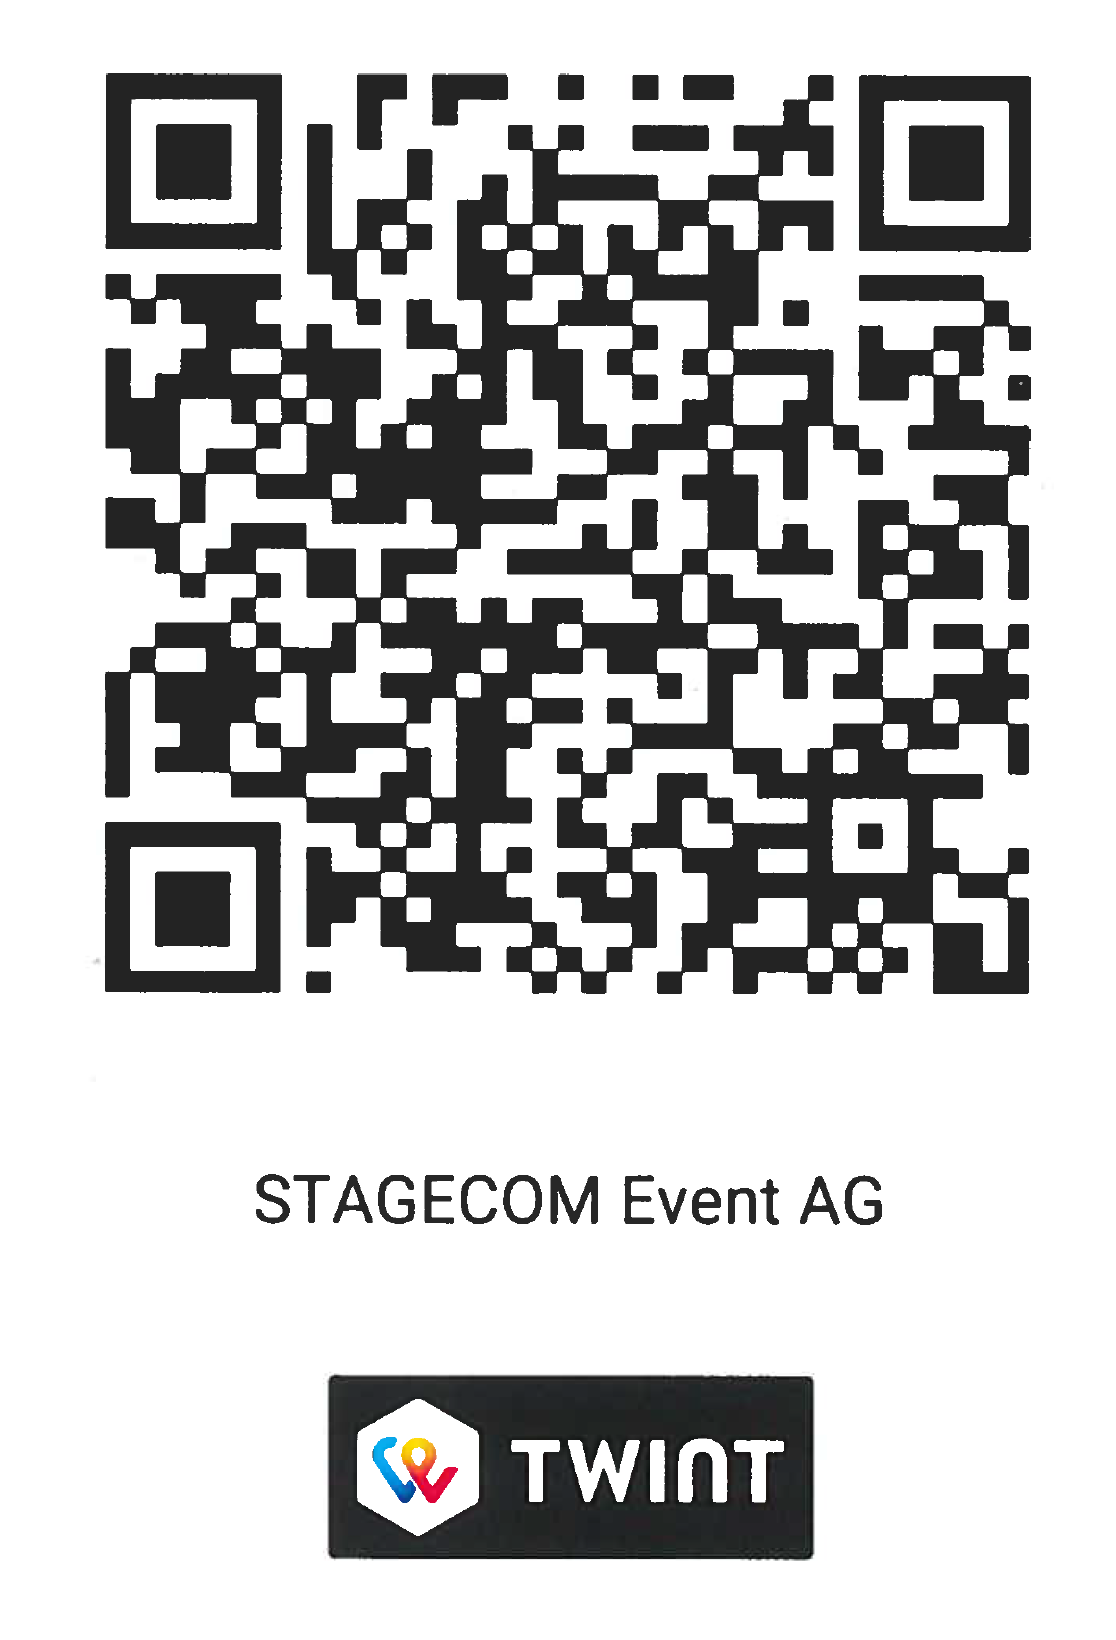 Twint_QR_STAGECOM.png